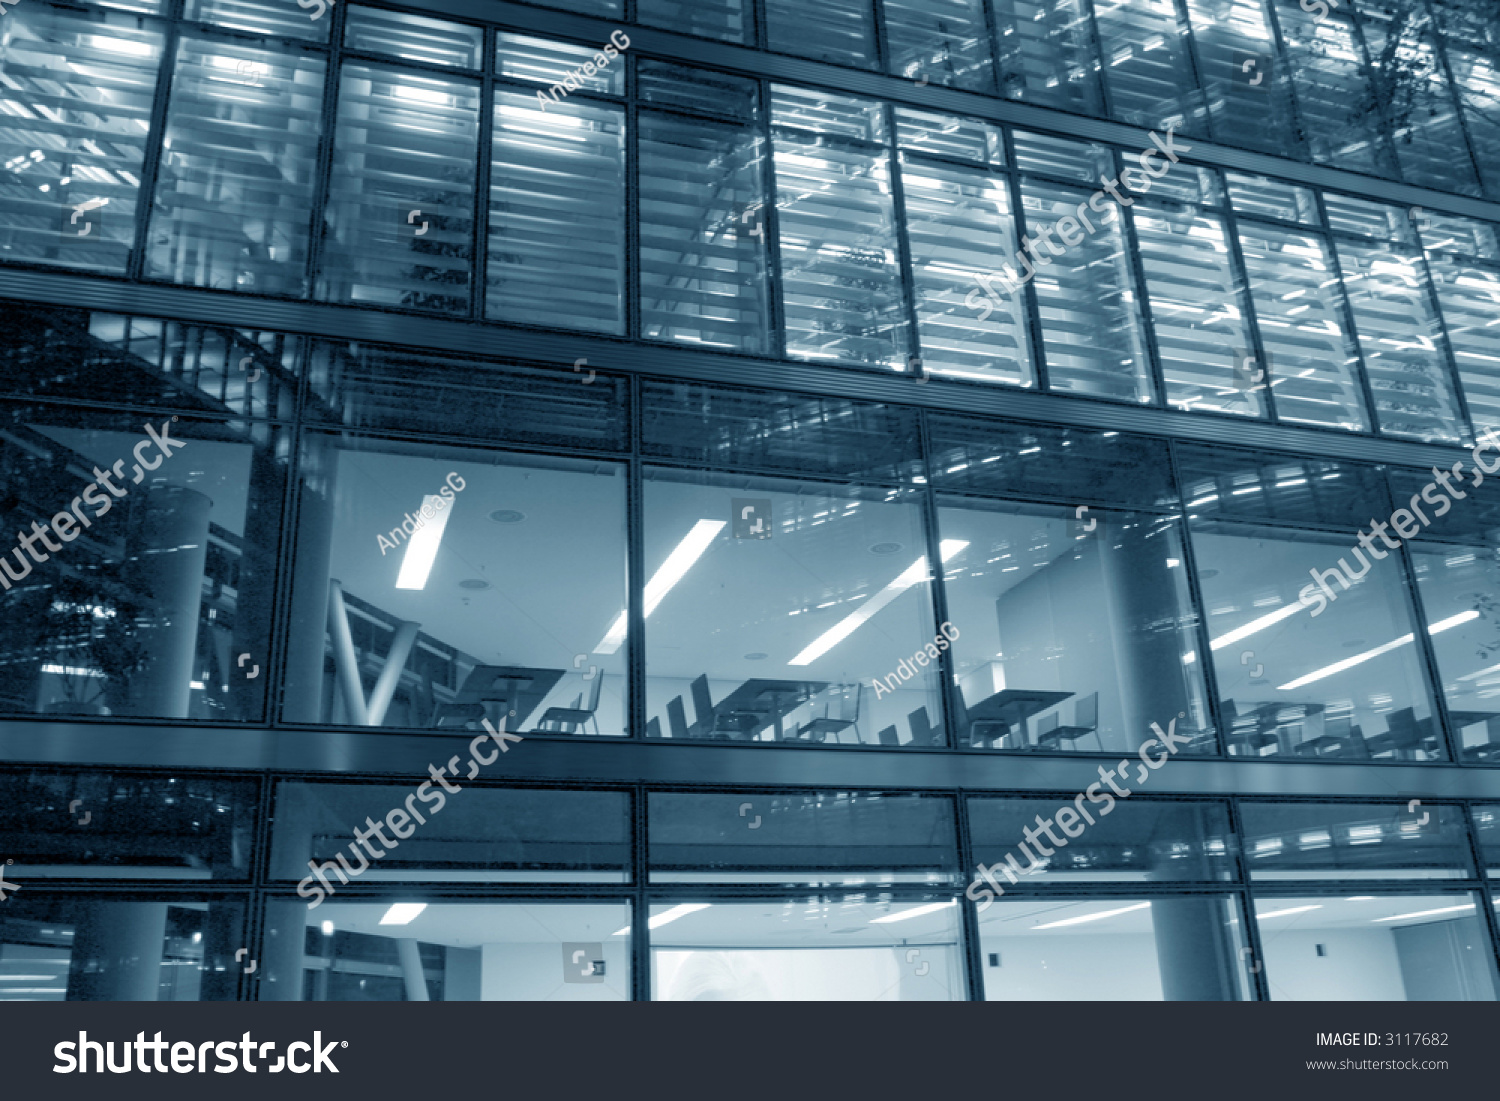 Building Front Glass Elevation : Hitech glass elevation modern office building stock photo